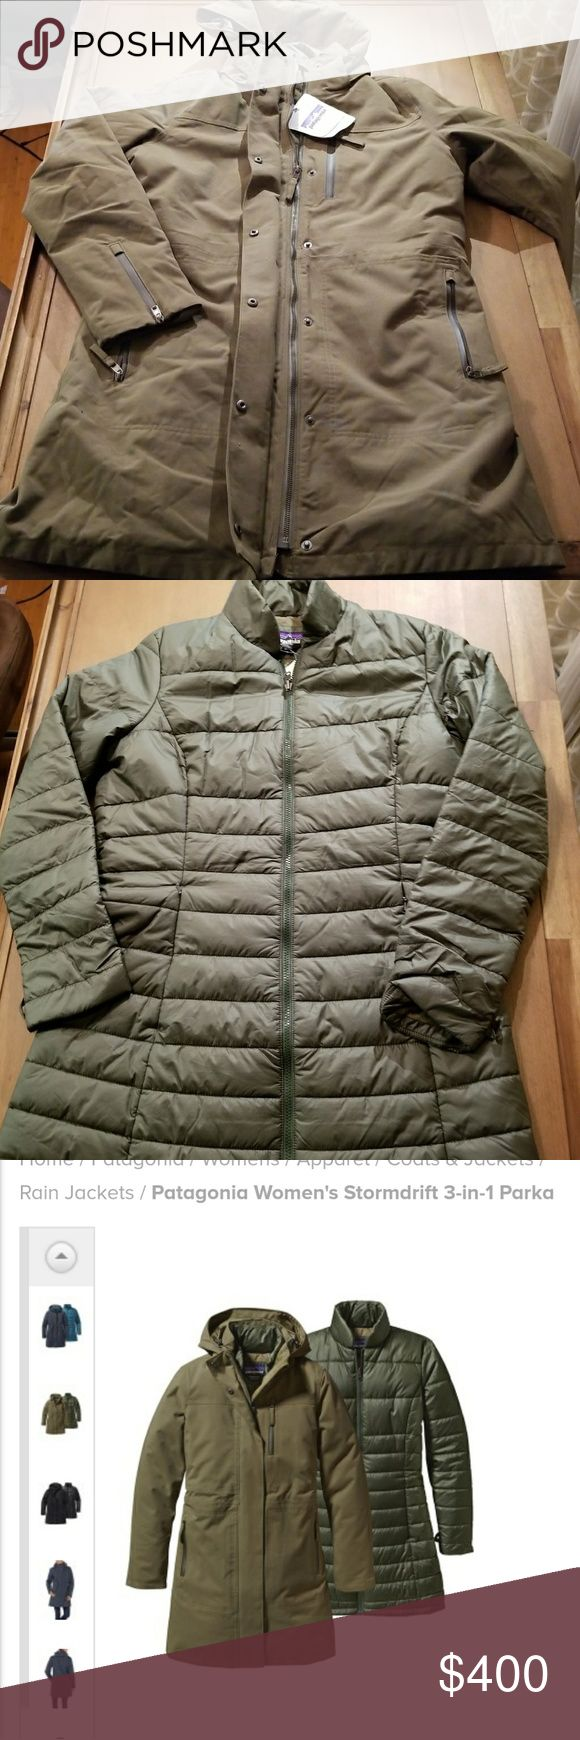 NWT Patagonia STORMDRIFT 3 in 1 parka womans Large NEW WITH TAGS. patagonia storm drift 3 in 1 parka, fatigue green, womens large. Style # 28110 Open to reasonable offers Like the tres 3 in 1 parka, but polyester/synthetic down instead of goose feather down Patagonia Jackets & Coats